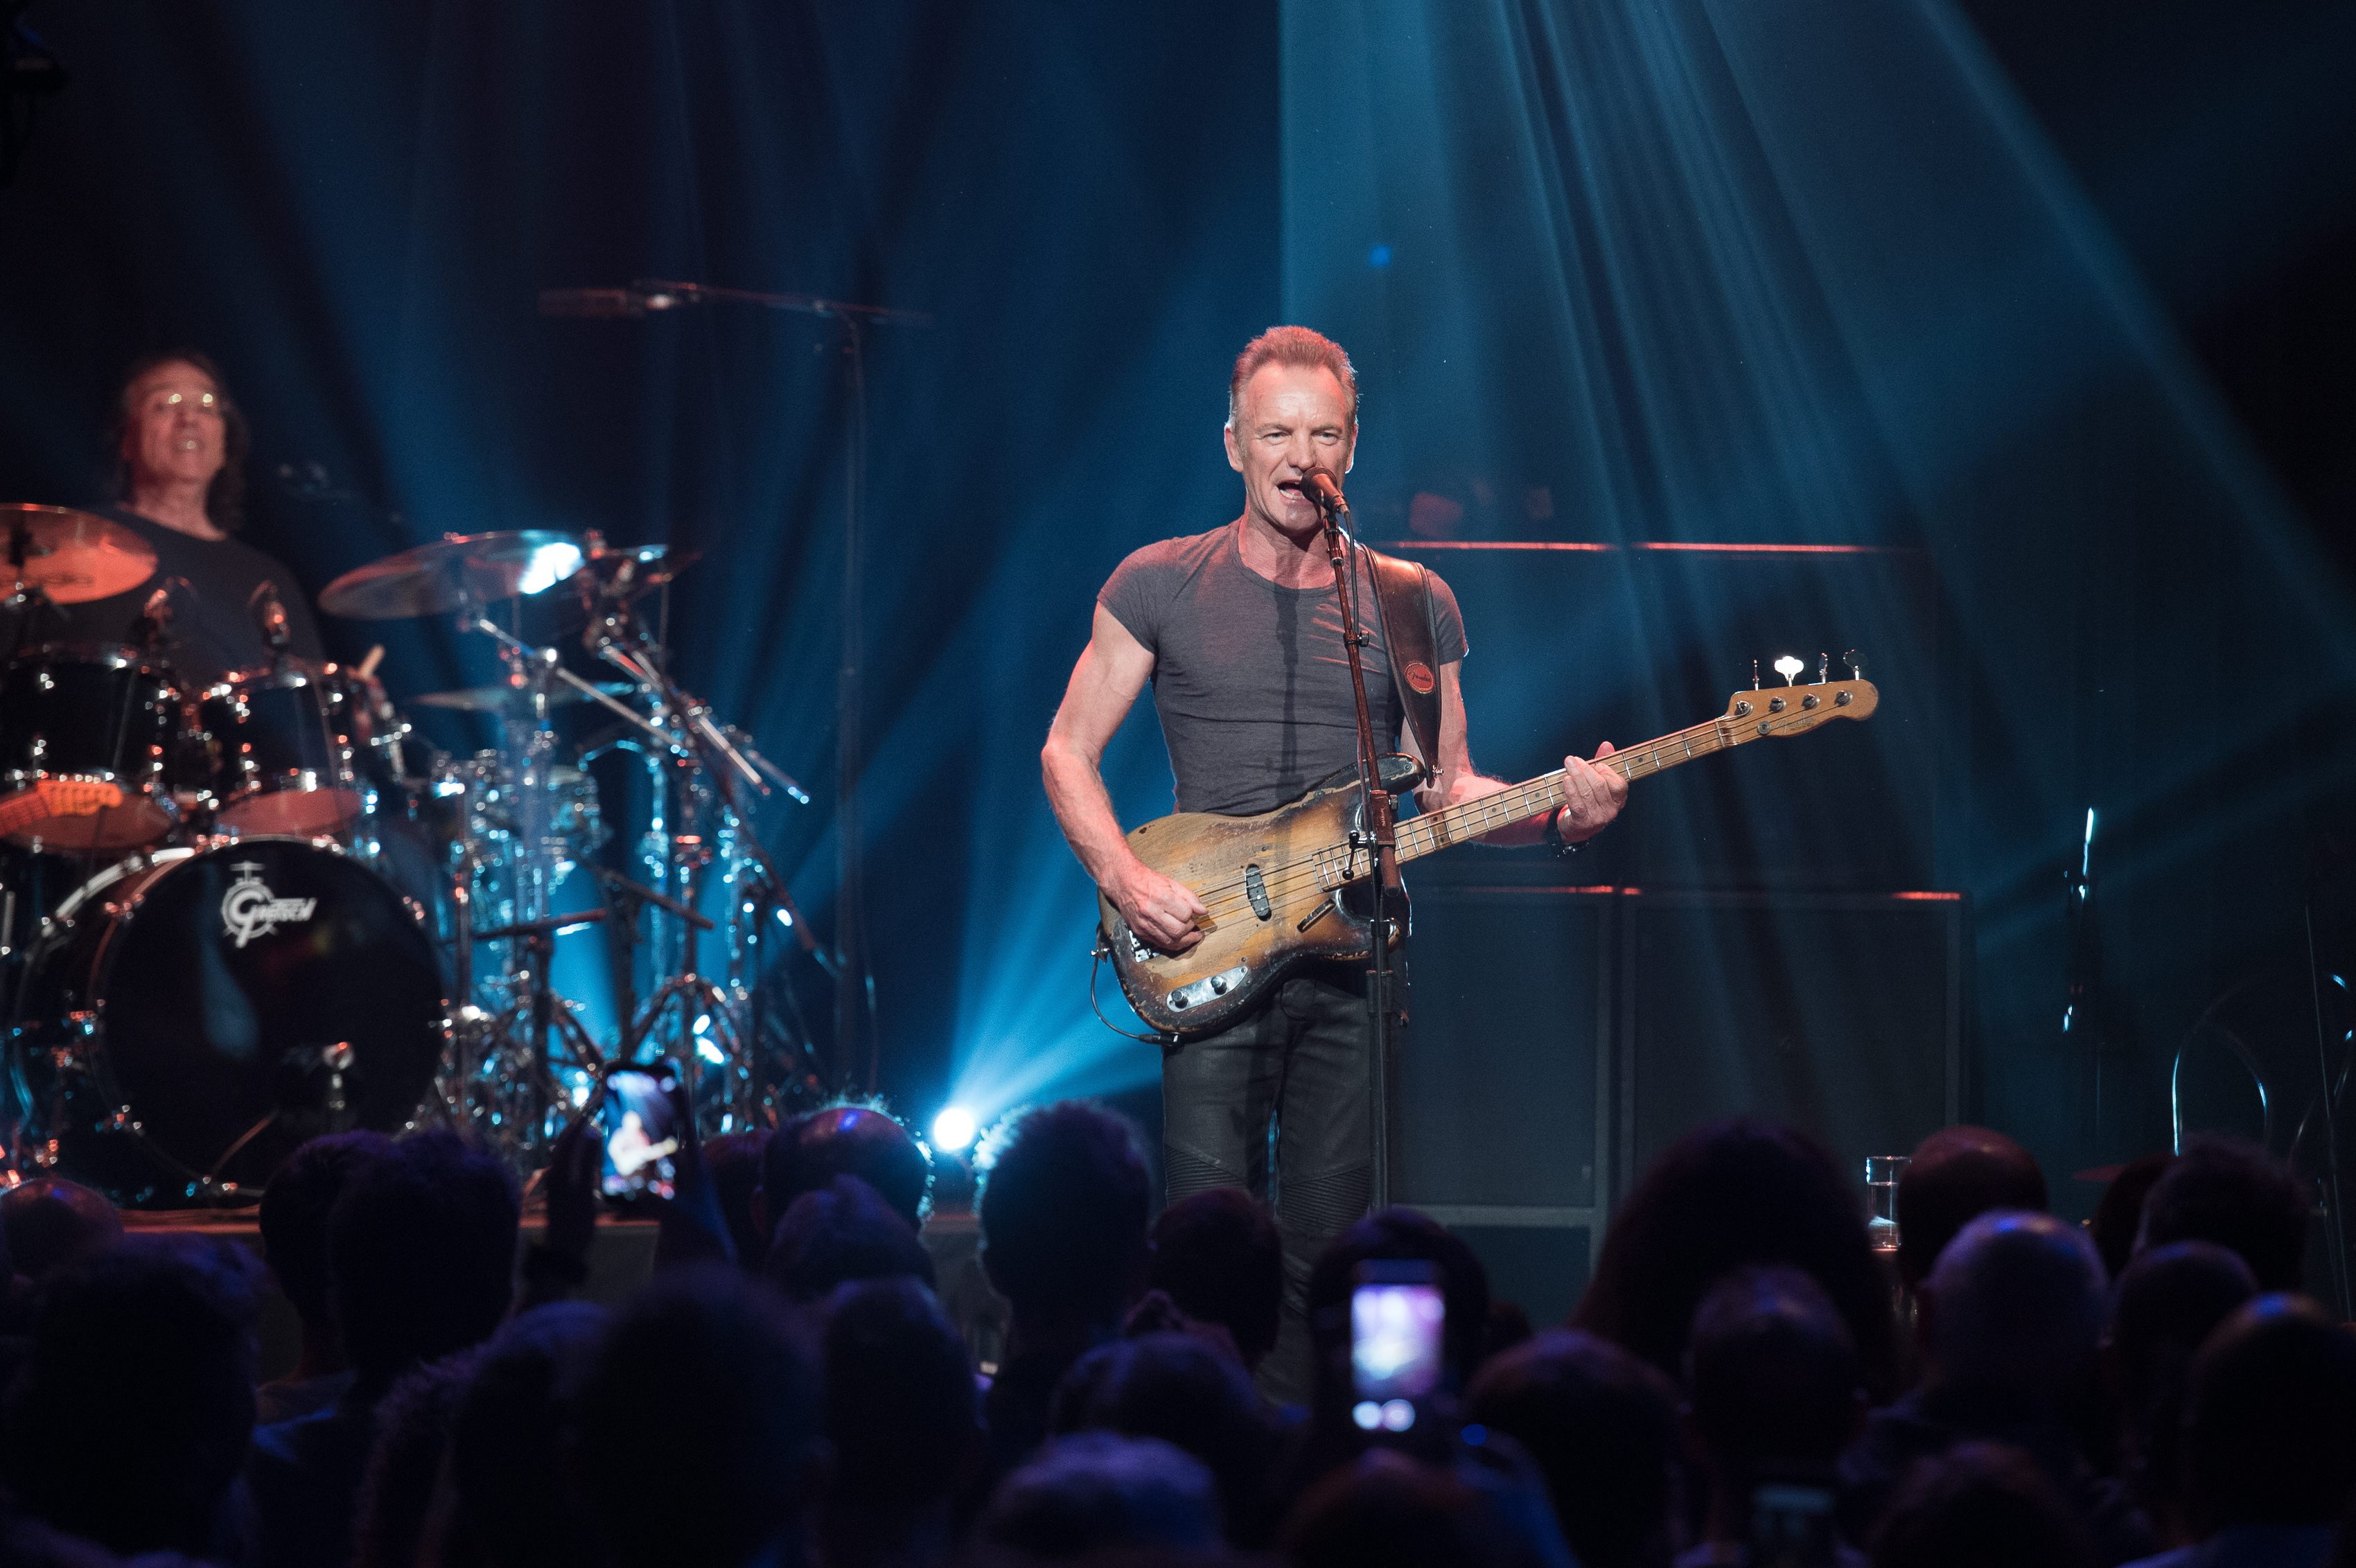 epa05629052 A handout image provided by the Bataclan managment shows British musician Sting (C) during his concert at the new